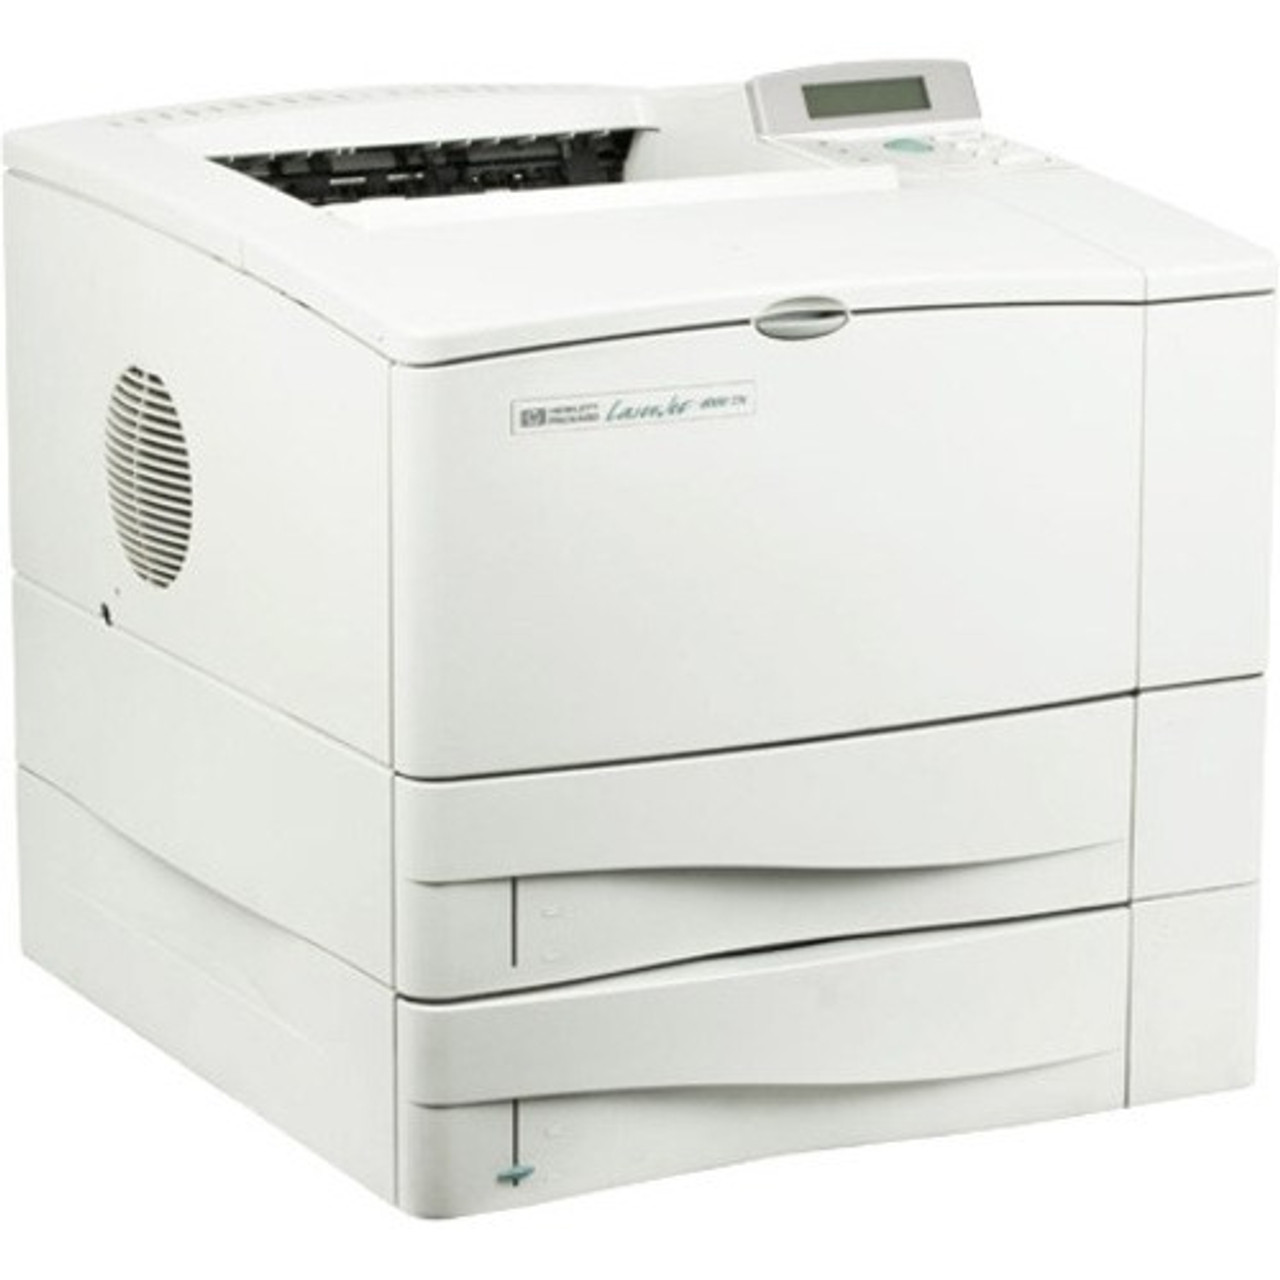 HP LaserJet 4000tn - C4121A - HP Laser Printer for sale